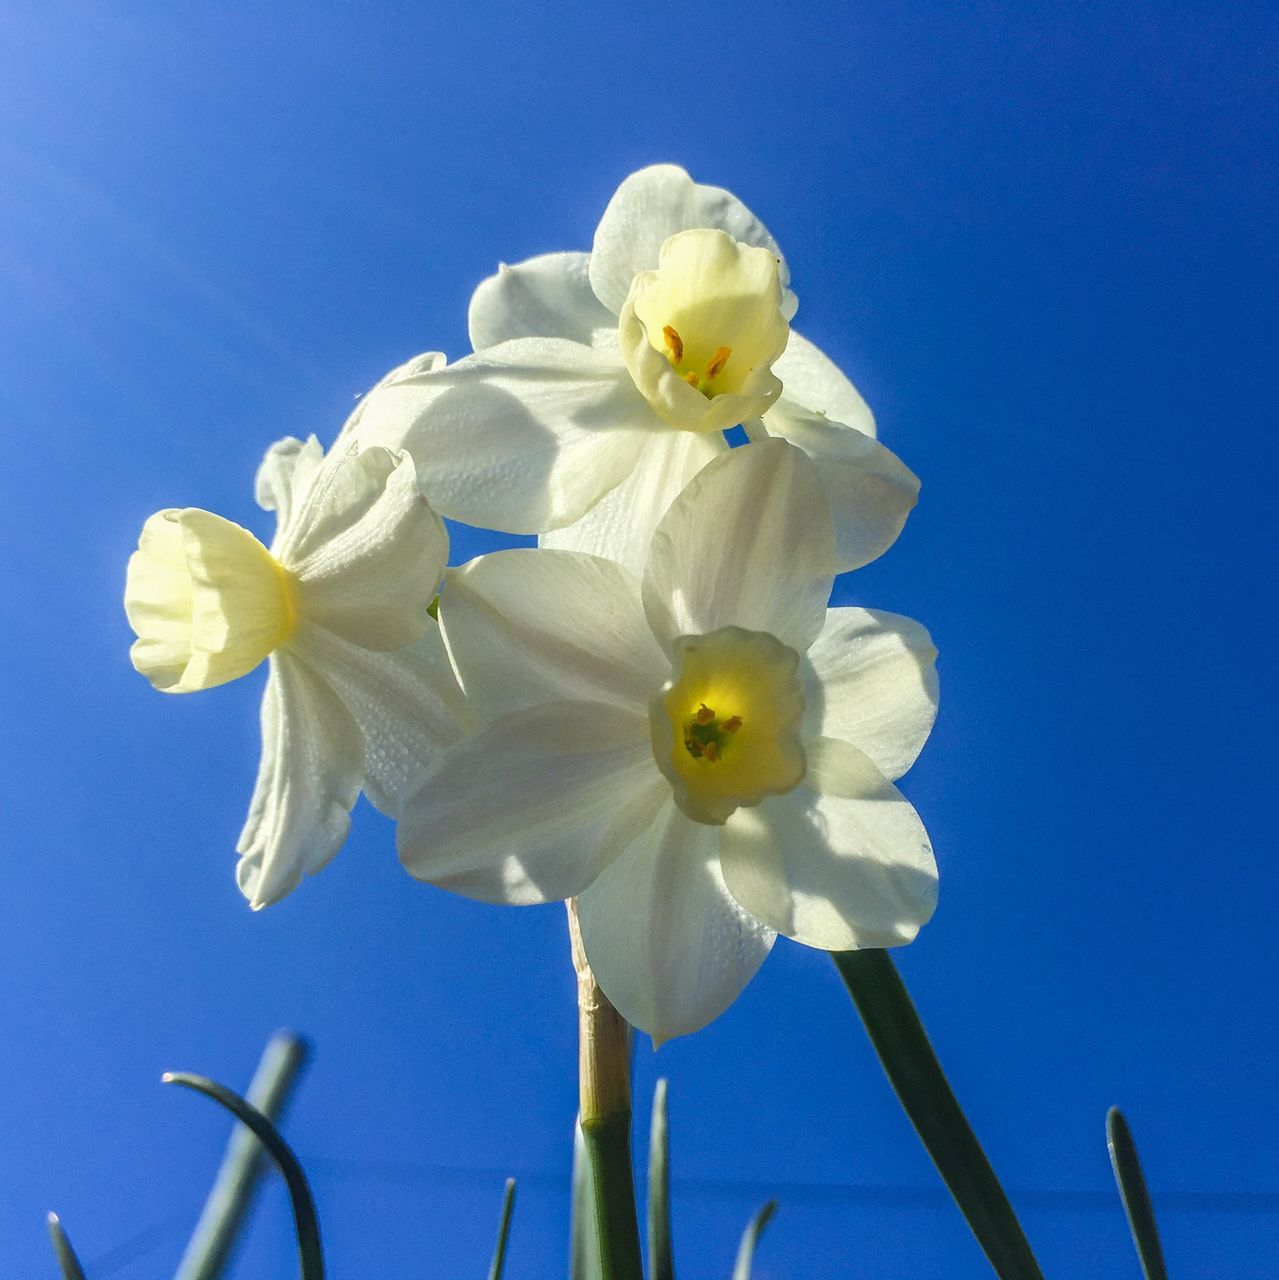 Low Angle View Of Daffodils Against Clear Blue Sky